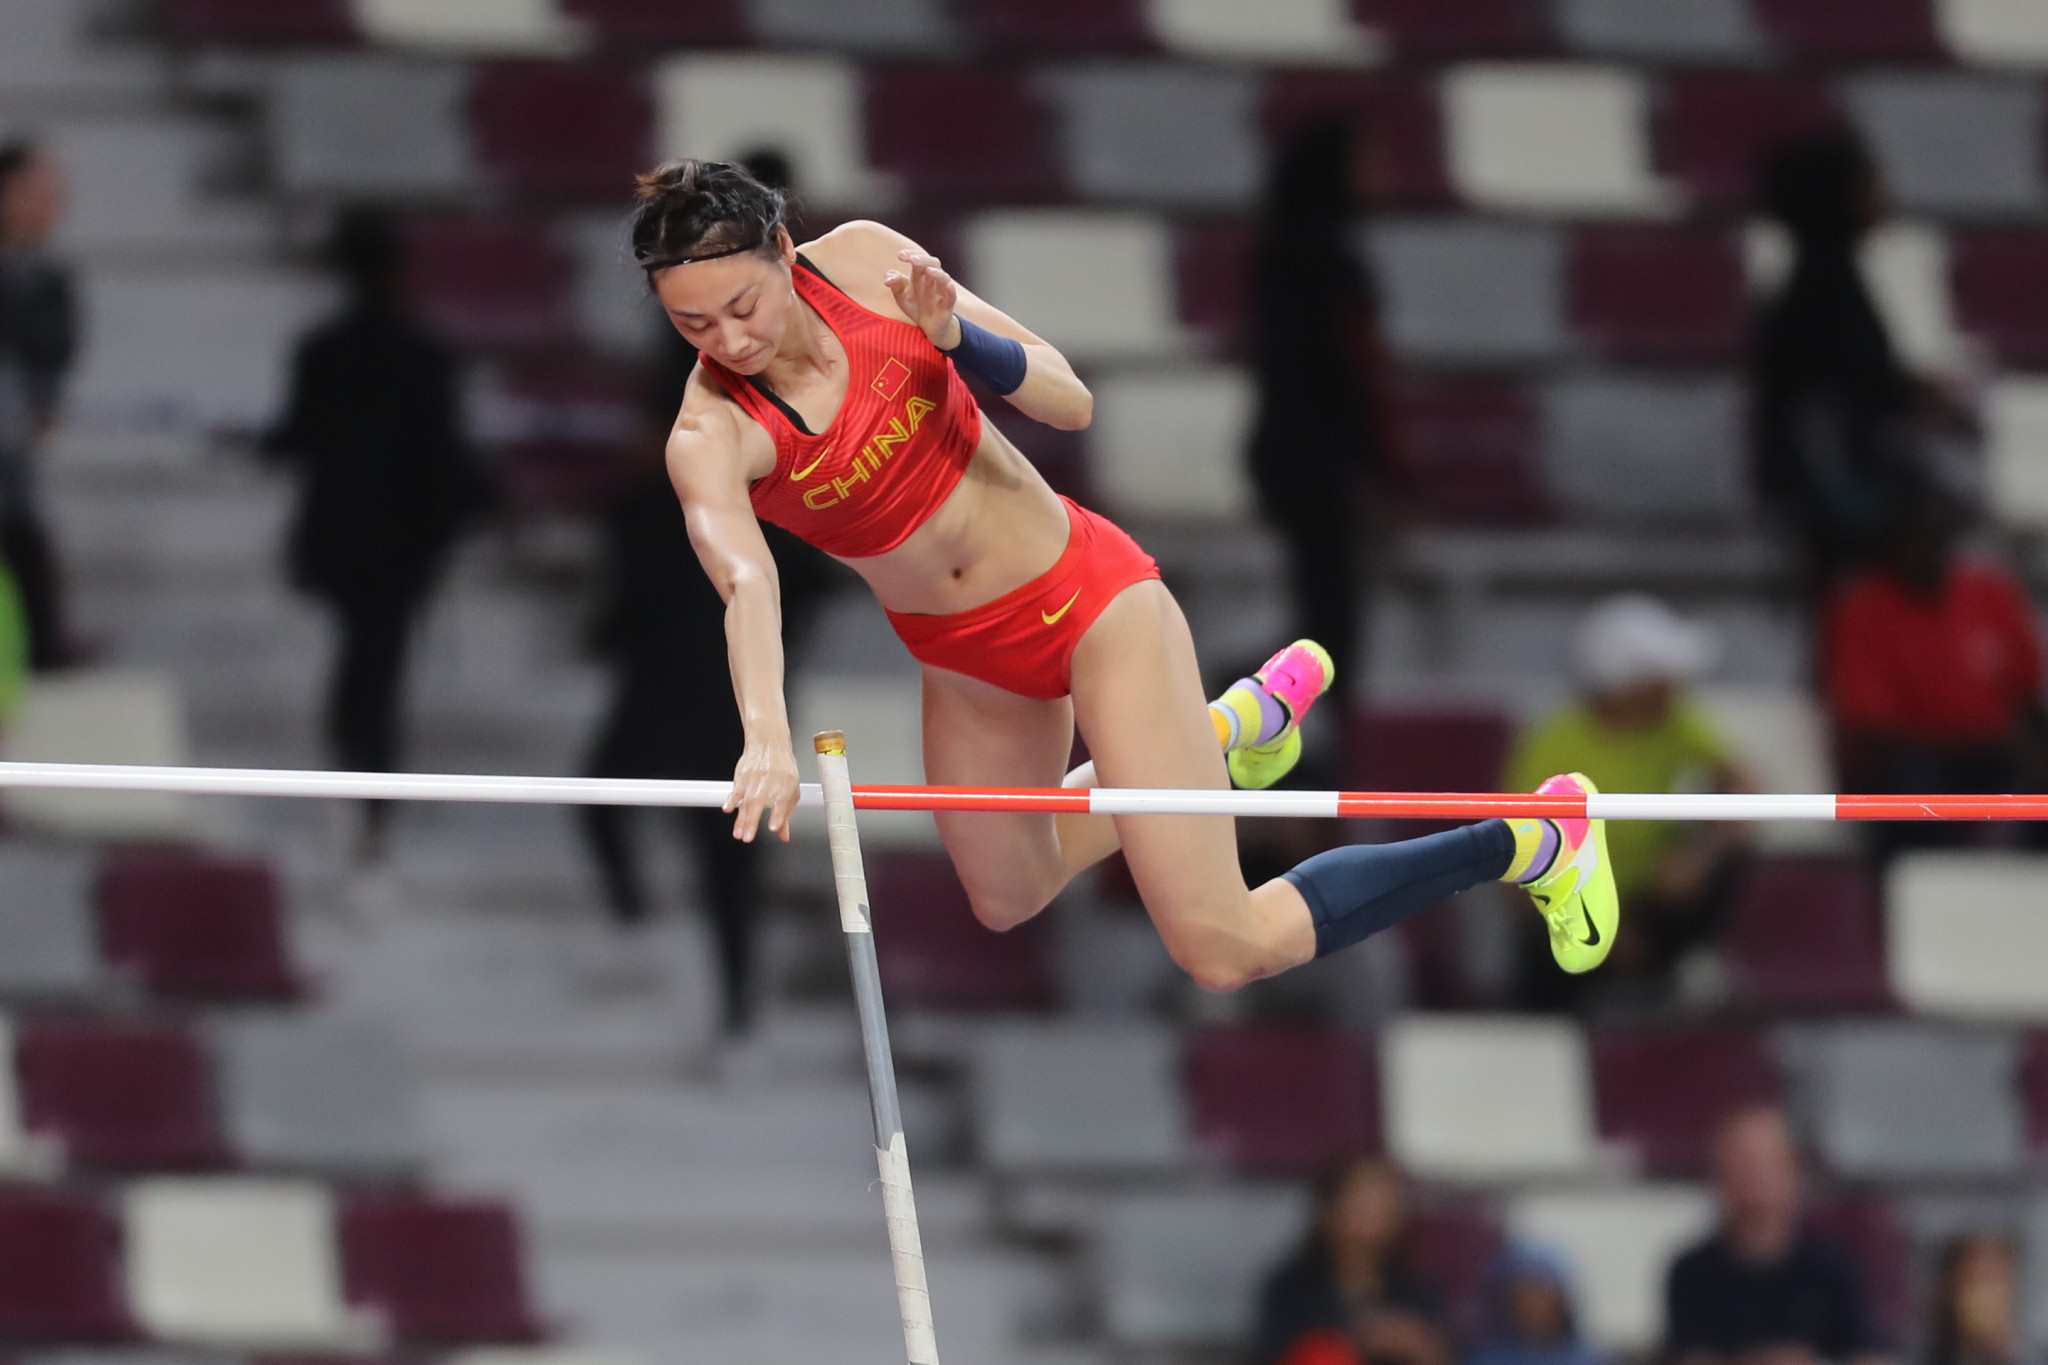 China's Li Ling came out on top in the women's pole vault ©Getty Images